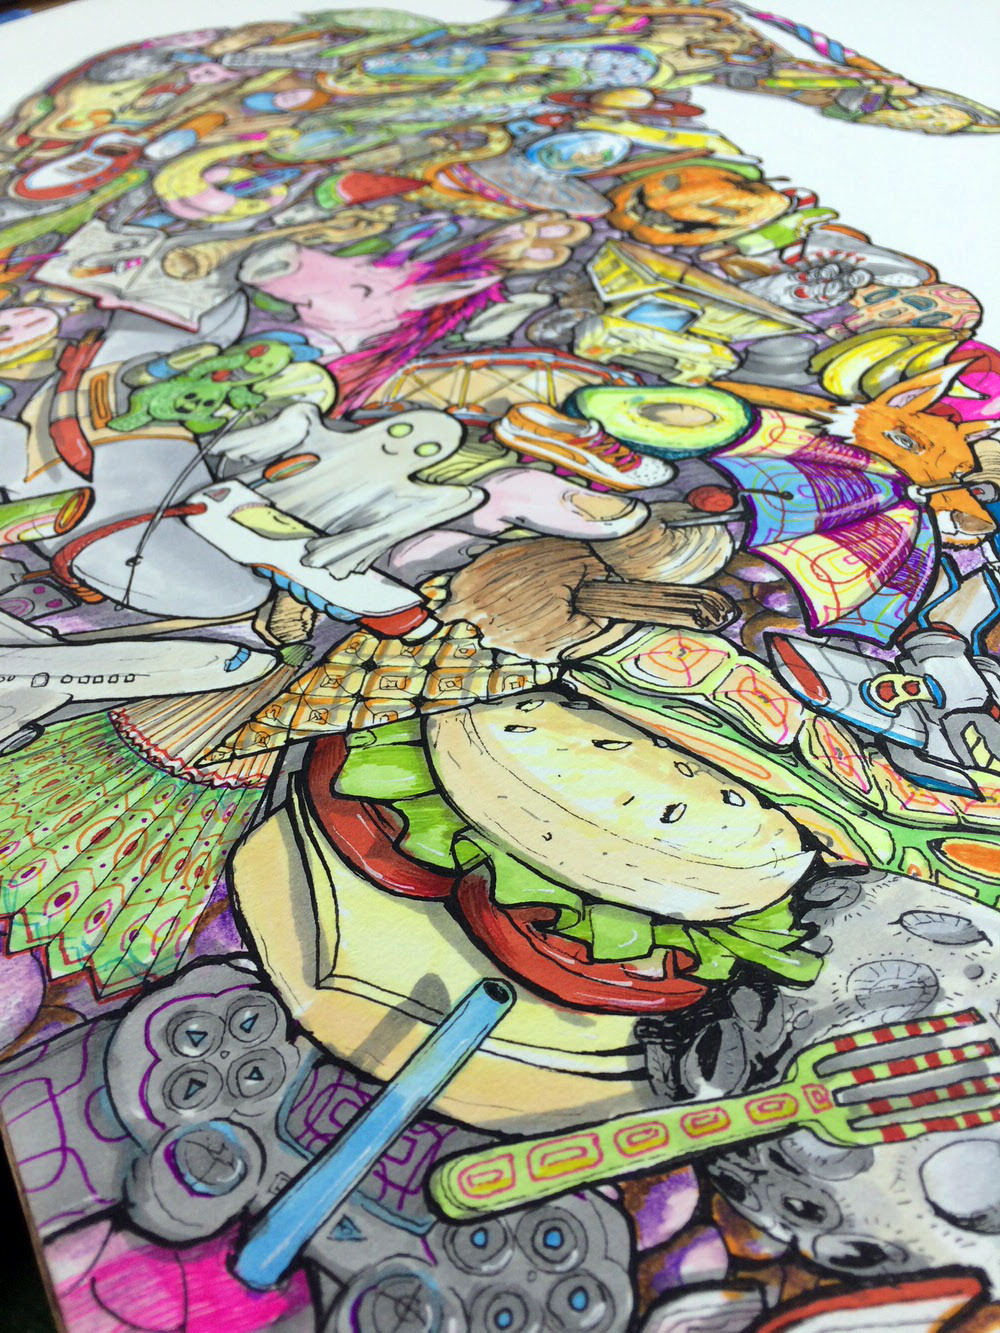 Close up of artwork showing a bright happy psychedelic imaginative dreamscape